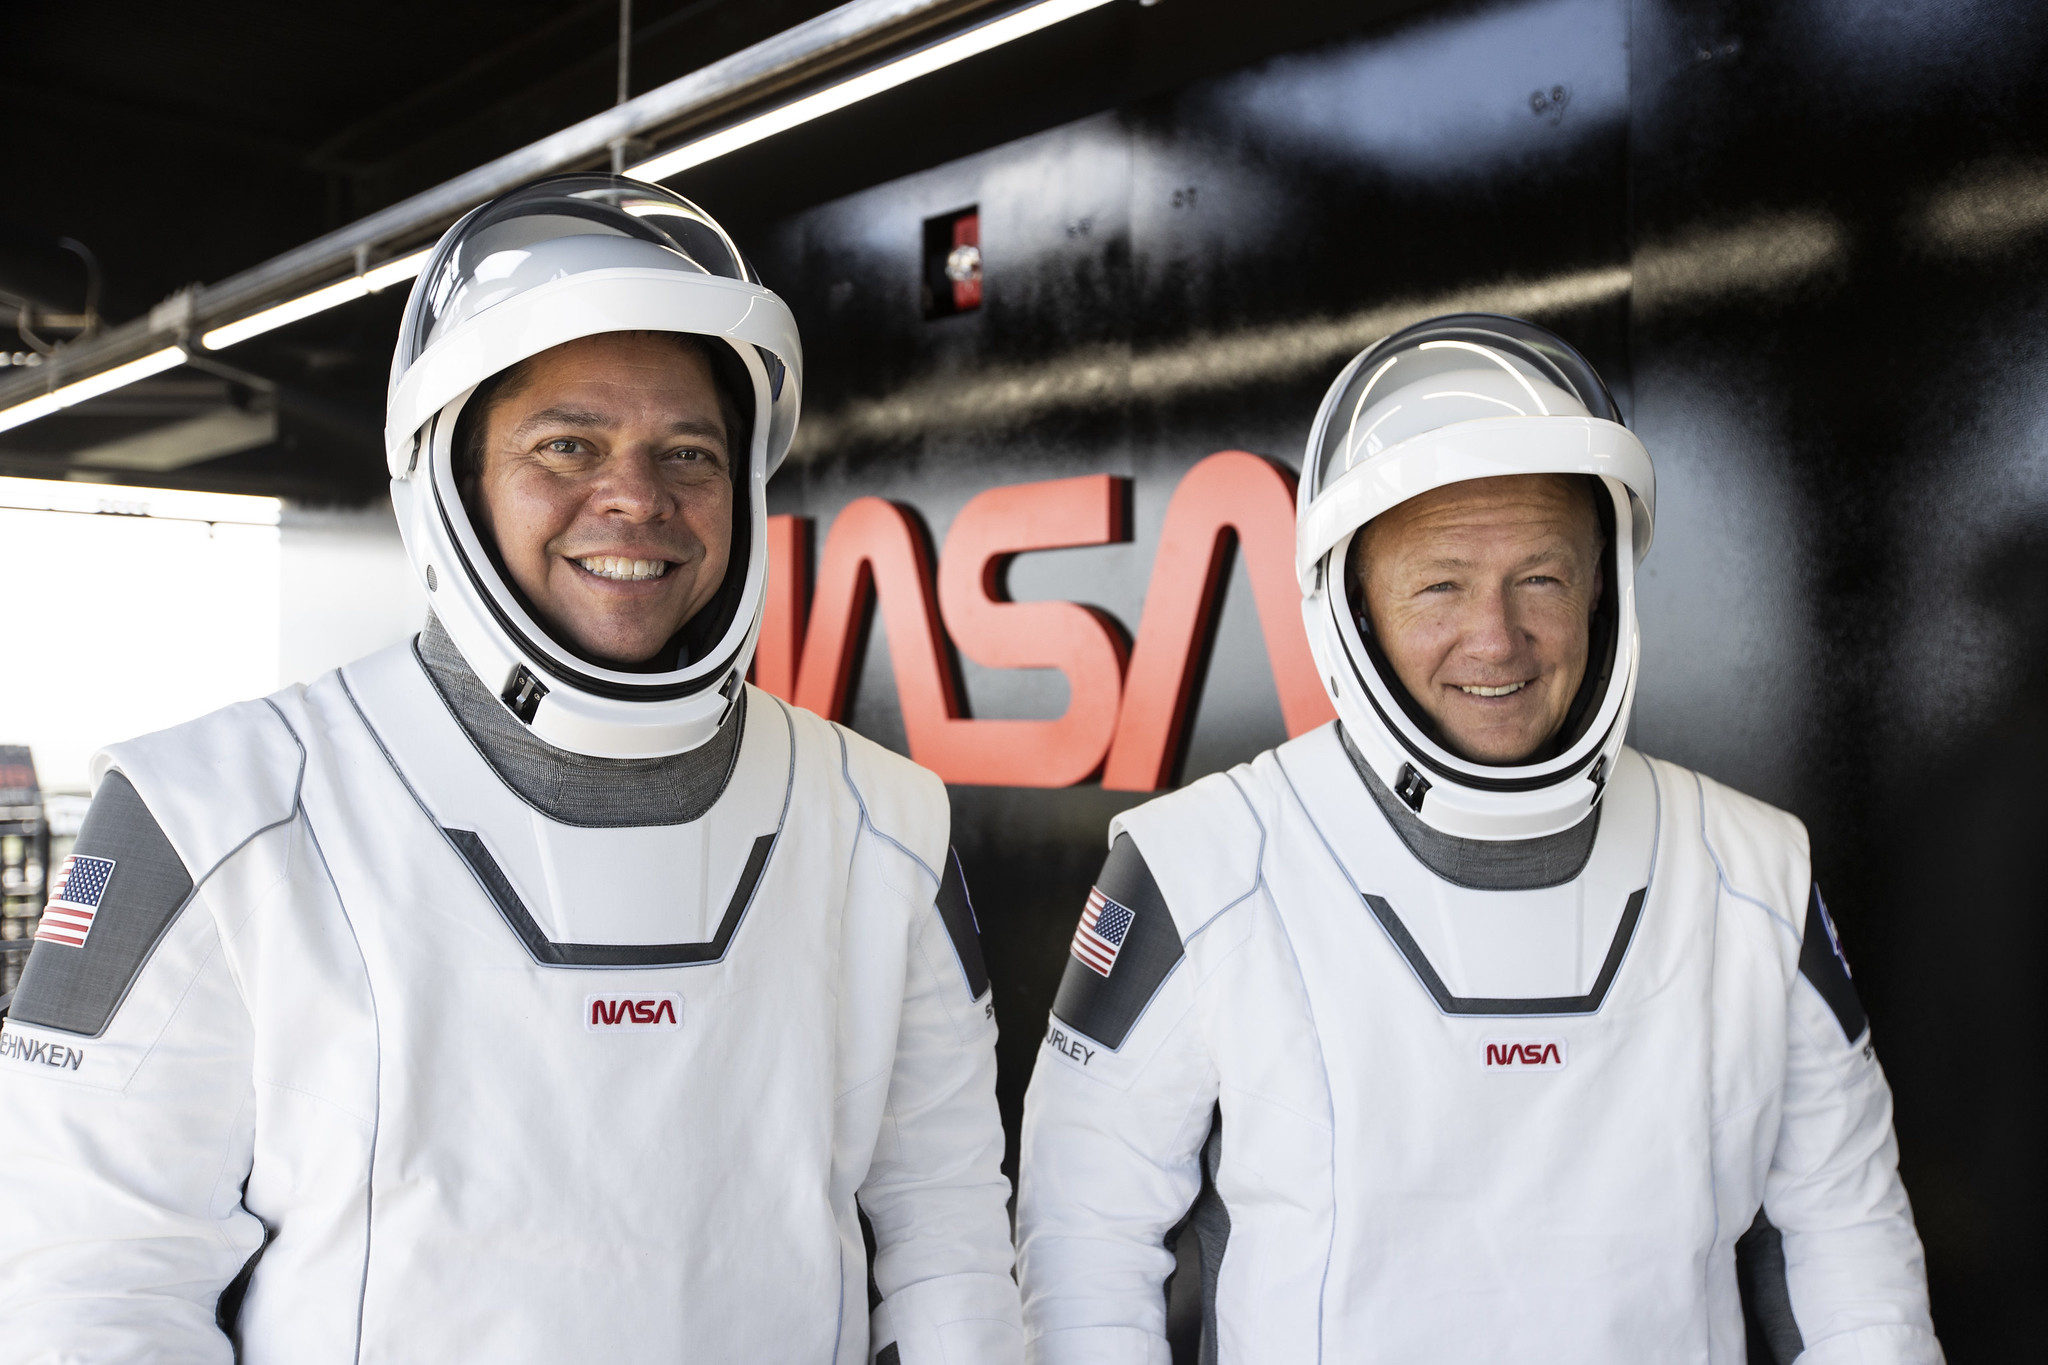 spacex crew dragon a new era in space exploration